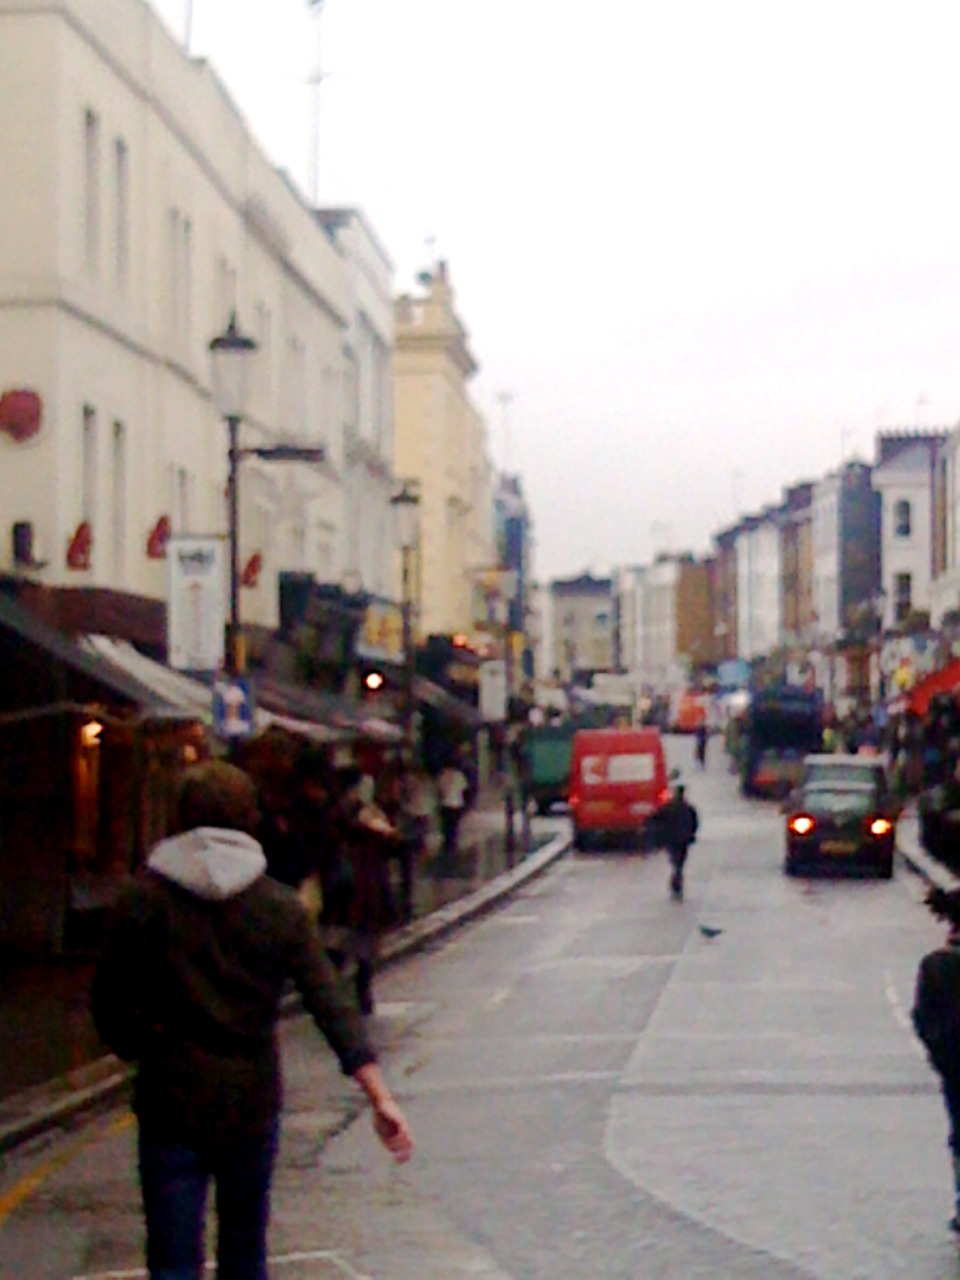 Photo i took in Portobello road